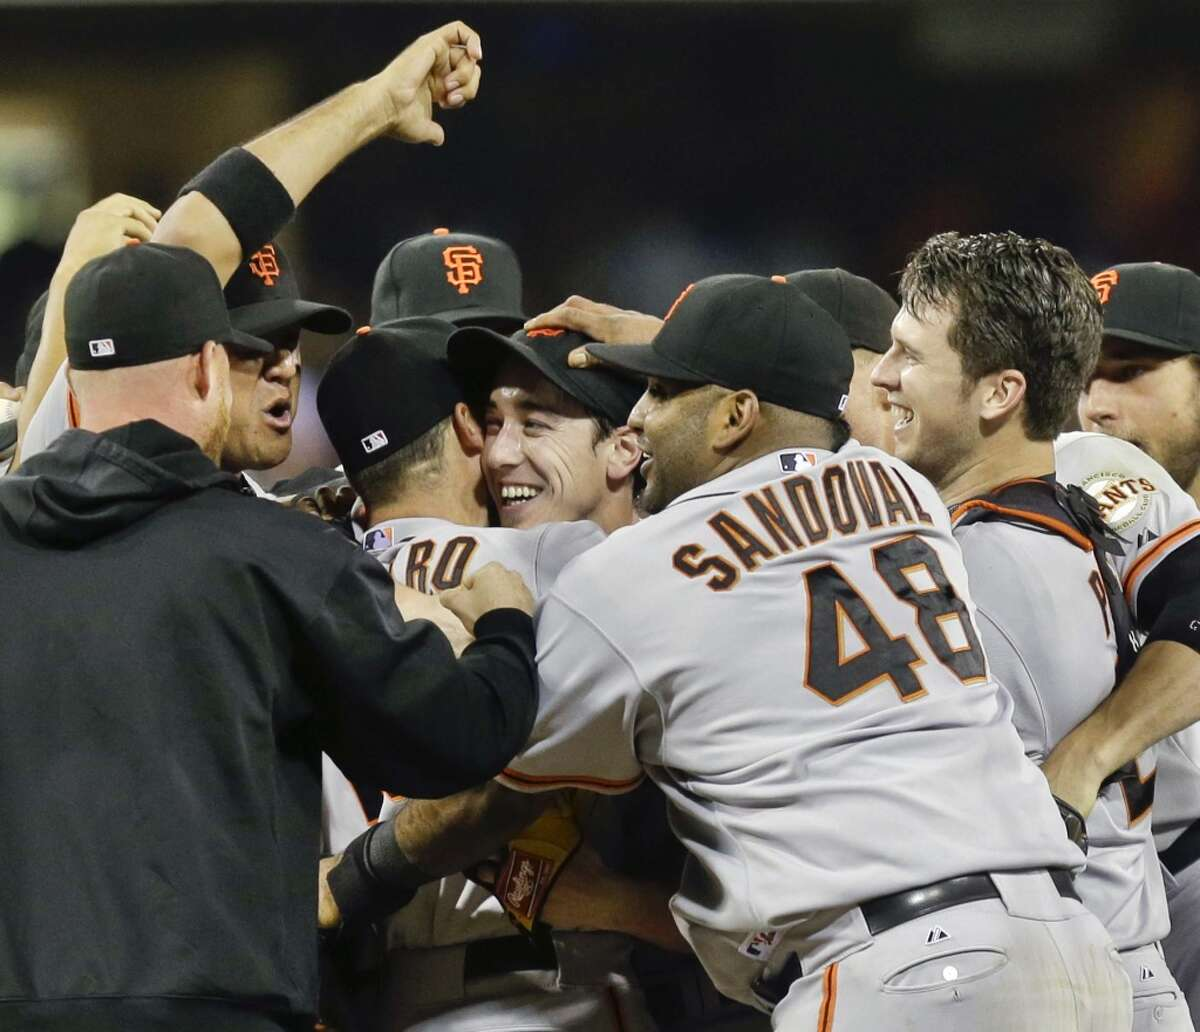 The San Francisco Giants celebrate after the no-hitter thrown by Tim Lincecum, center, against the San Diego Padres in San Diego on Saturday, July 13. The Giants won the game 9-0.